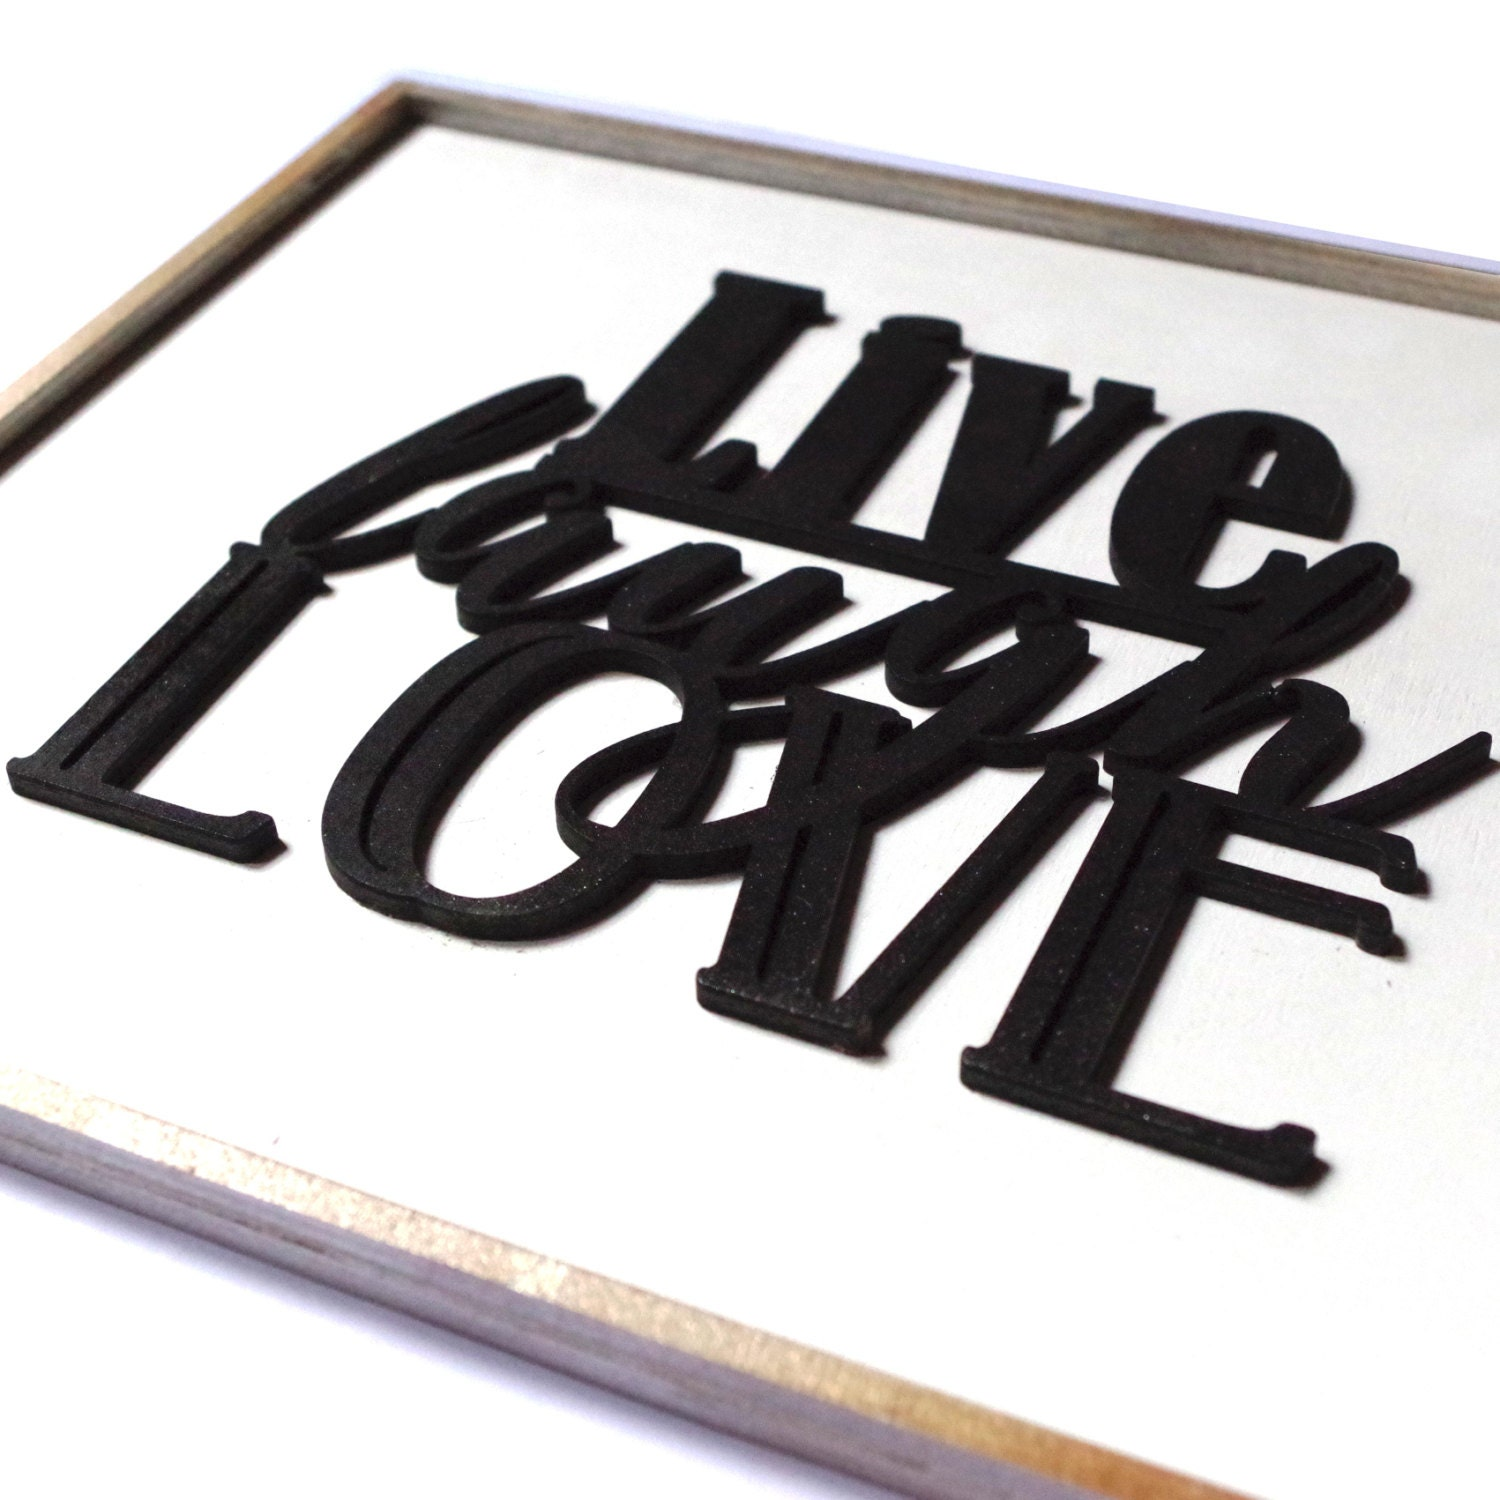 Live laugh love wall decor wooden canvas with relief writing live laugh love wall decor wooden canvas with relief writing custom colors amipublicfo Image collections